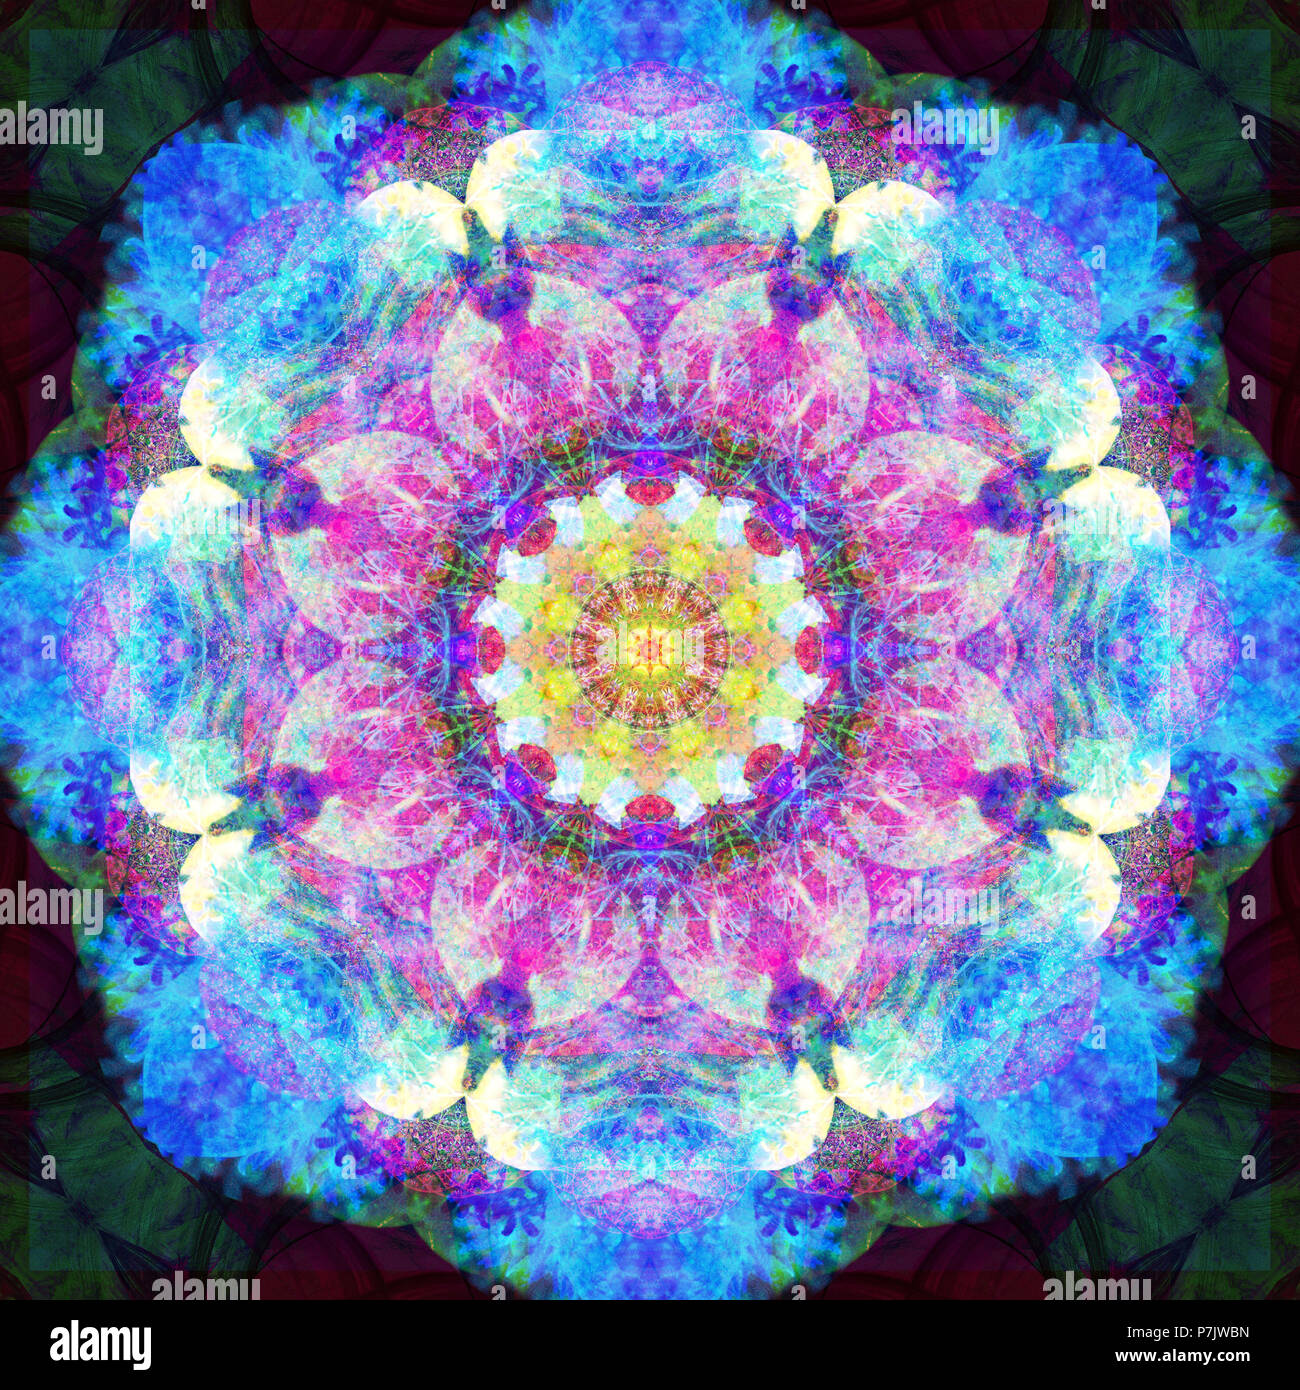 Photographic flower mandala, gleb, pink, blue, turquoise, - Stock Image